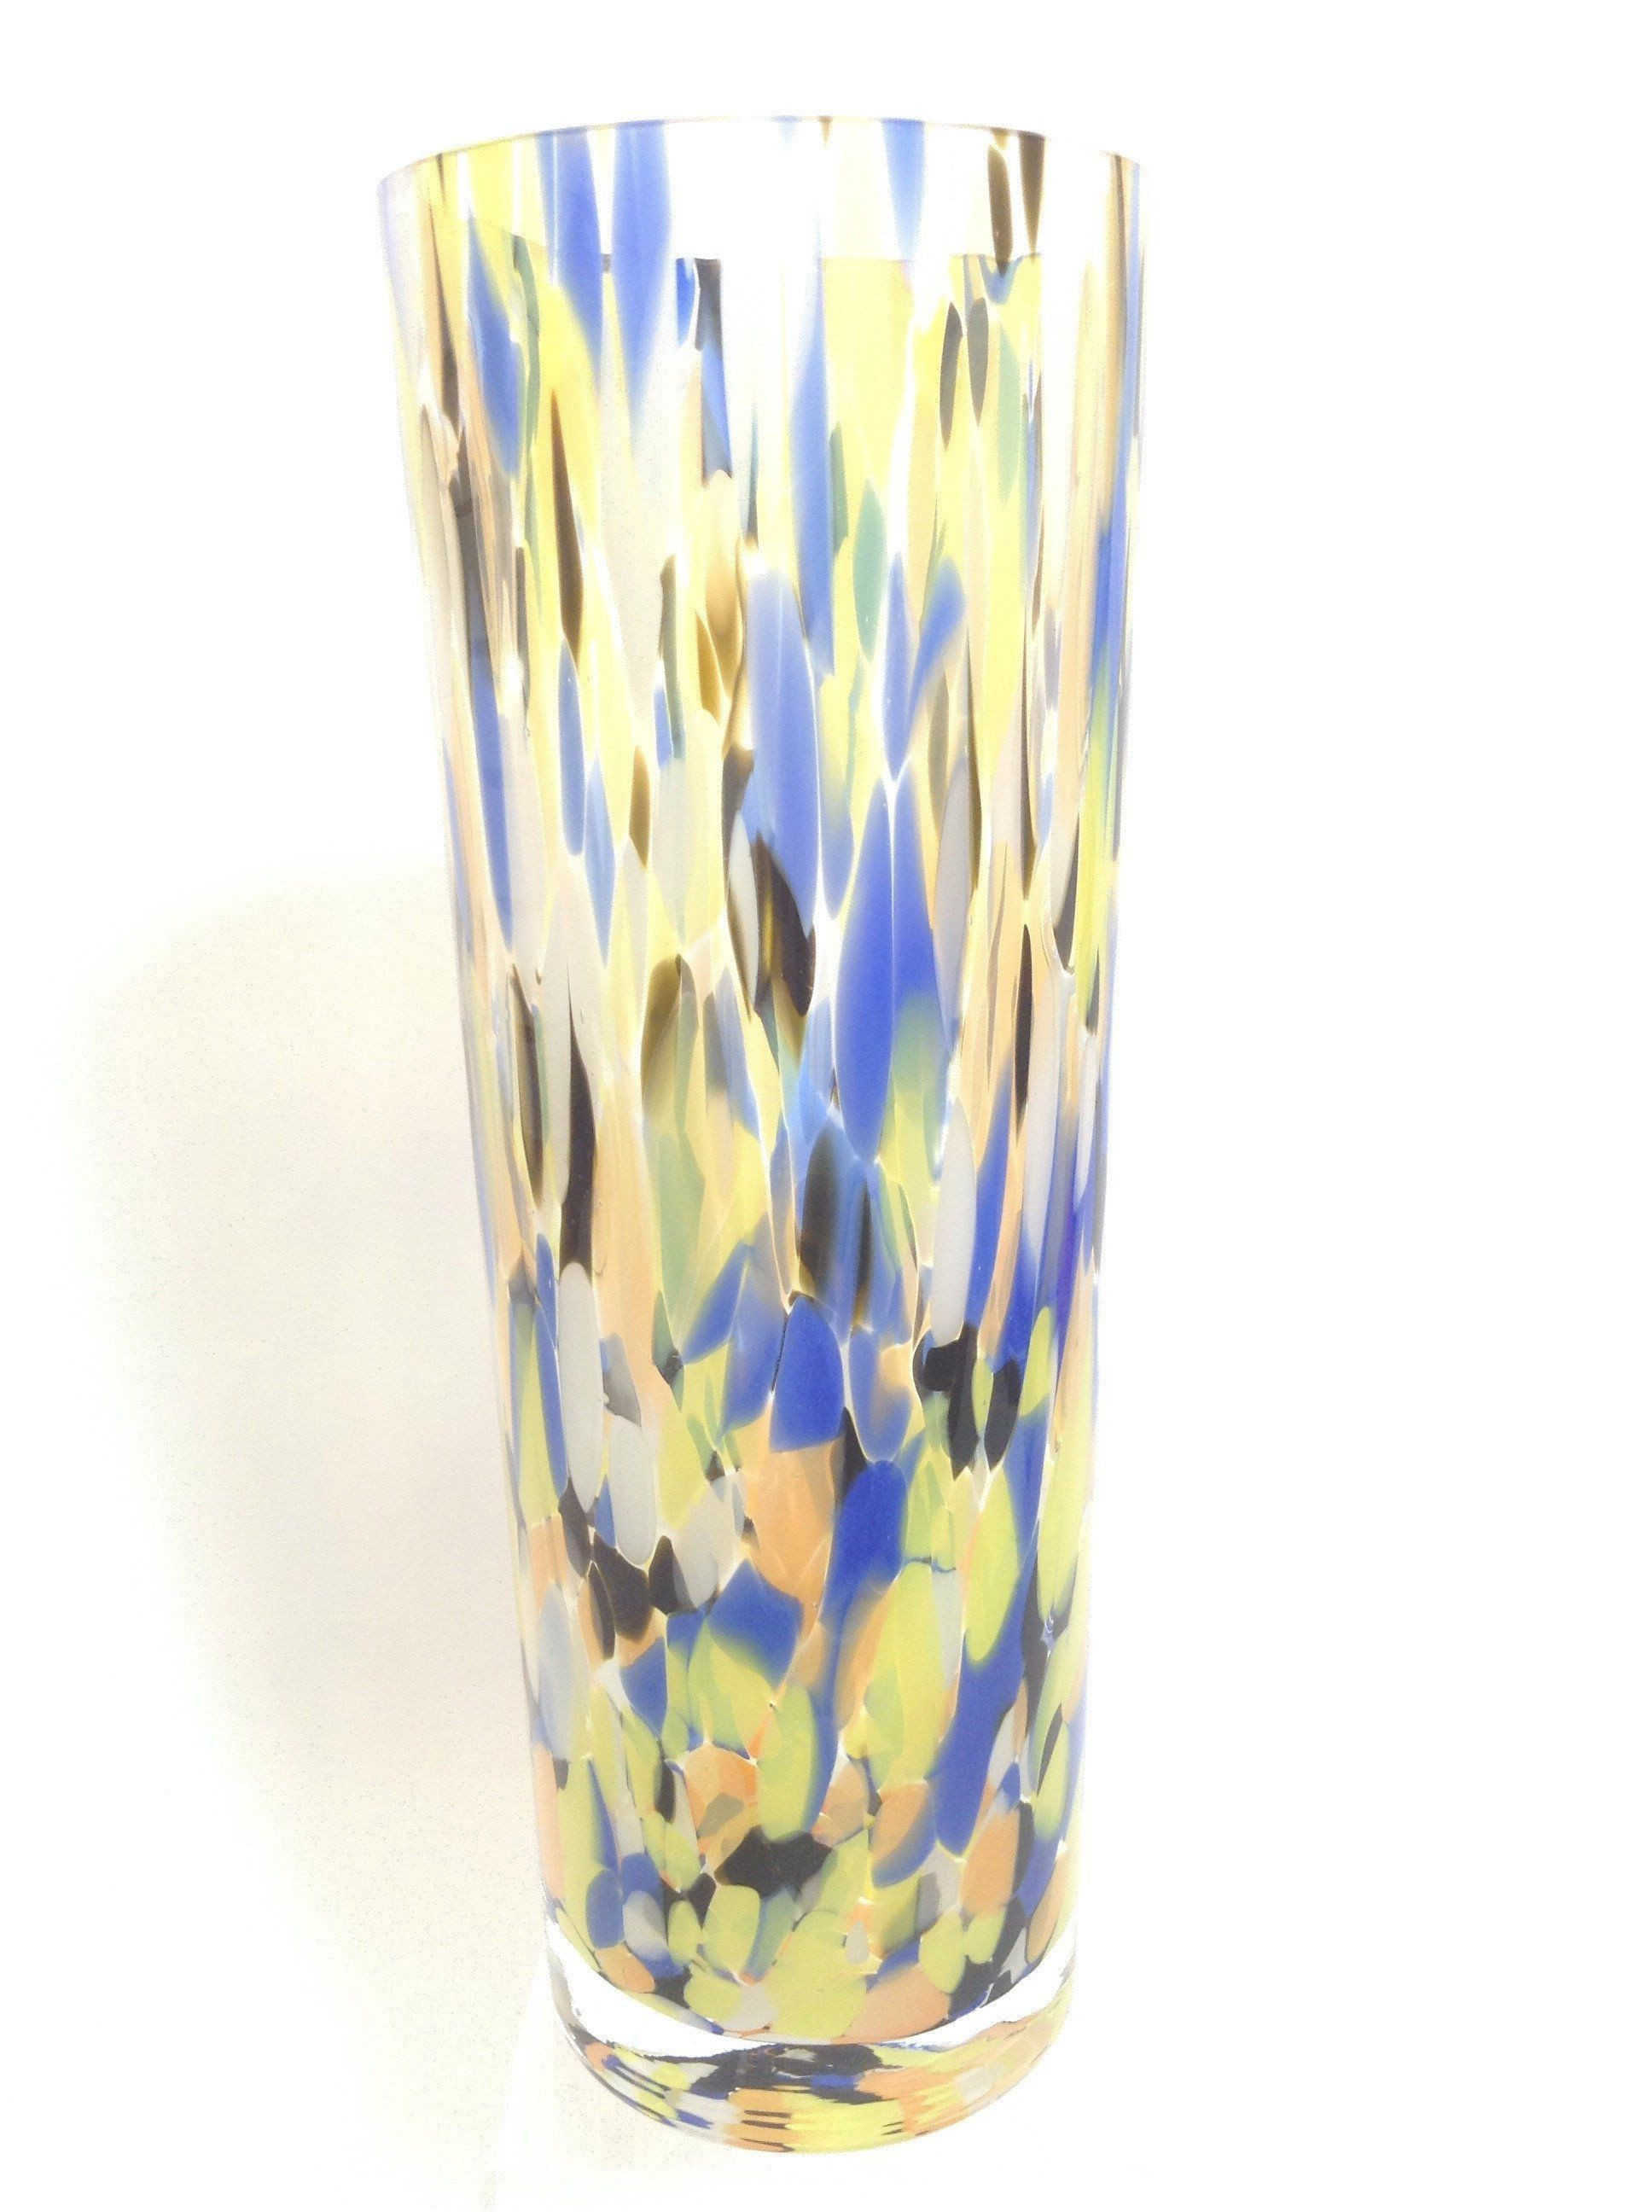 rope vase of pottery barn vases luxury yell blue blk glass vase products with regard to pottery barn vases luxury yell blue blk glass vase products pinterest